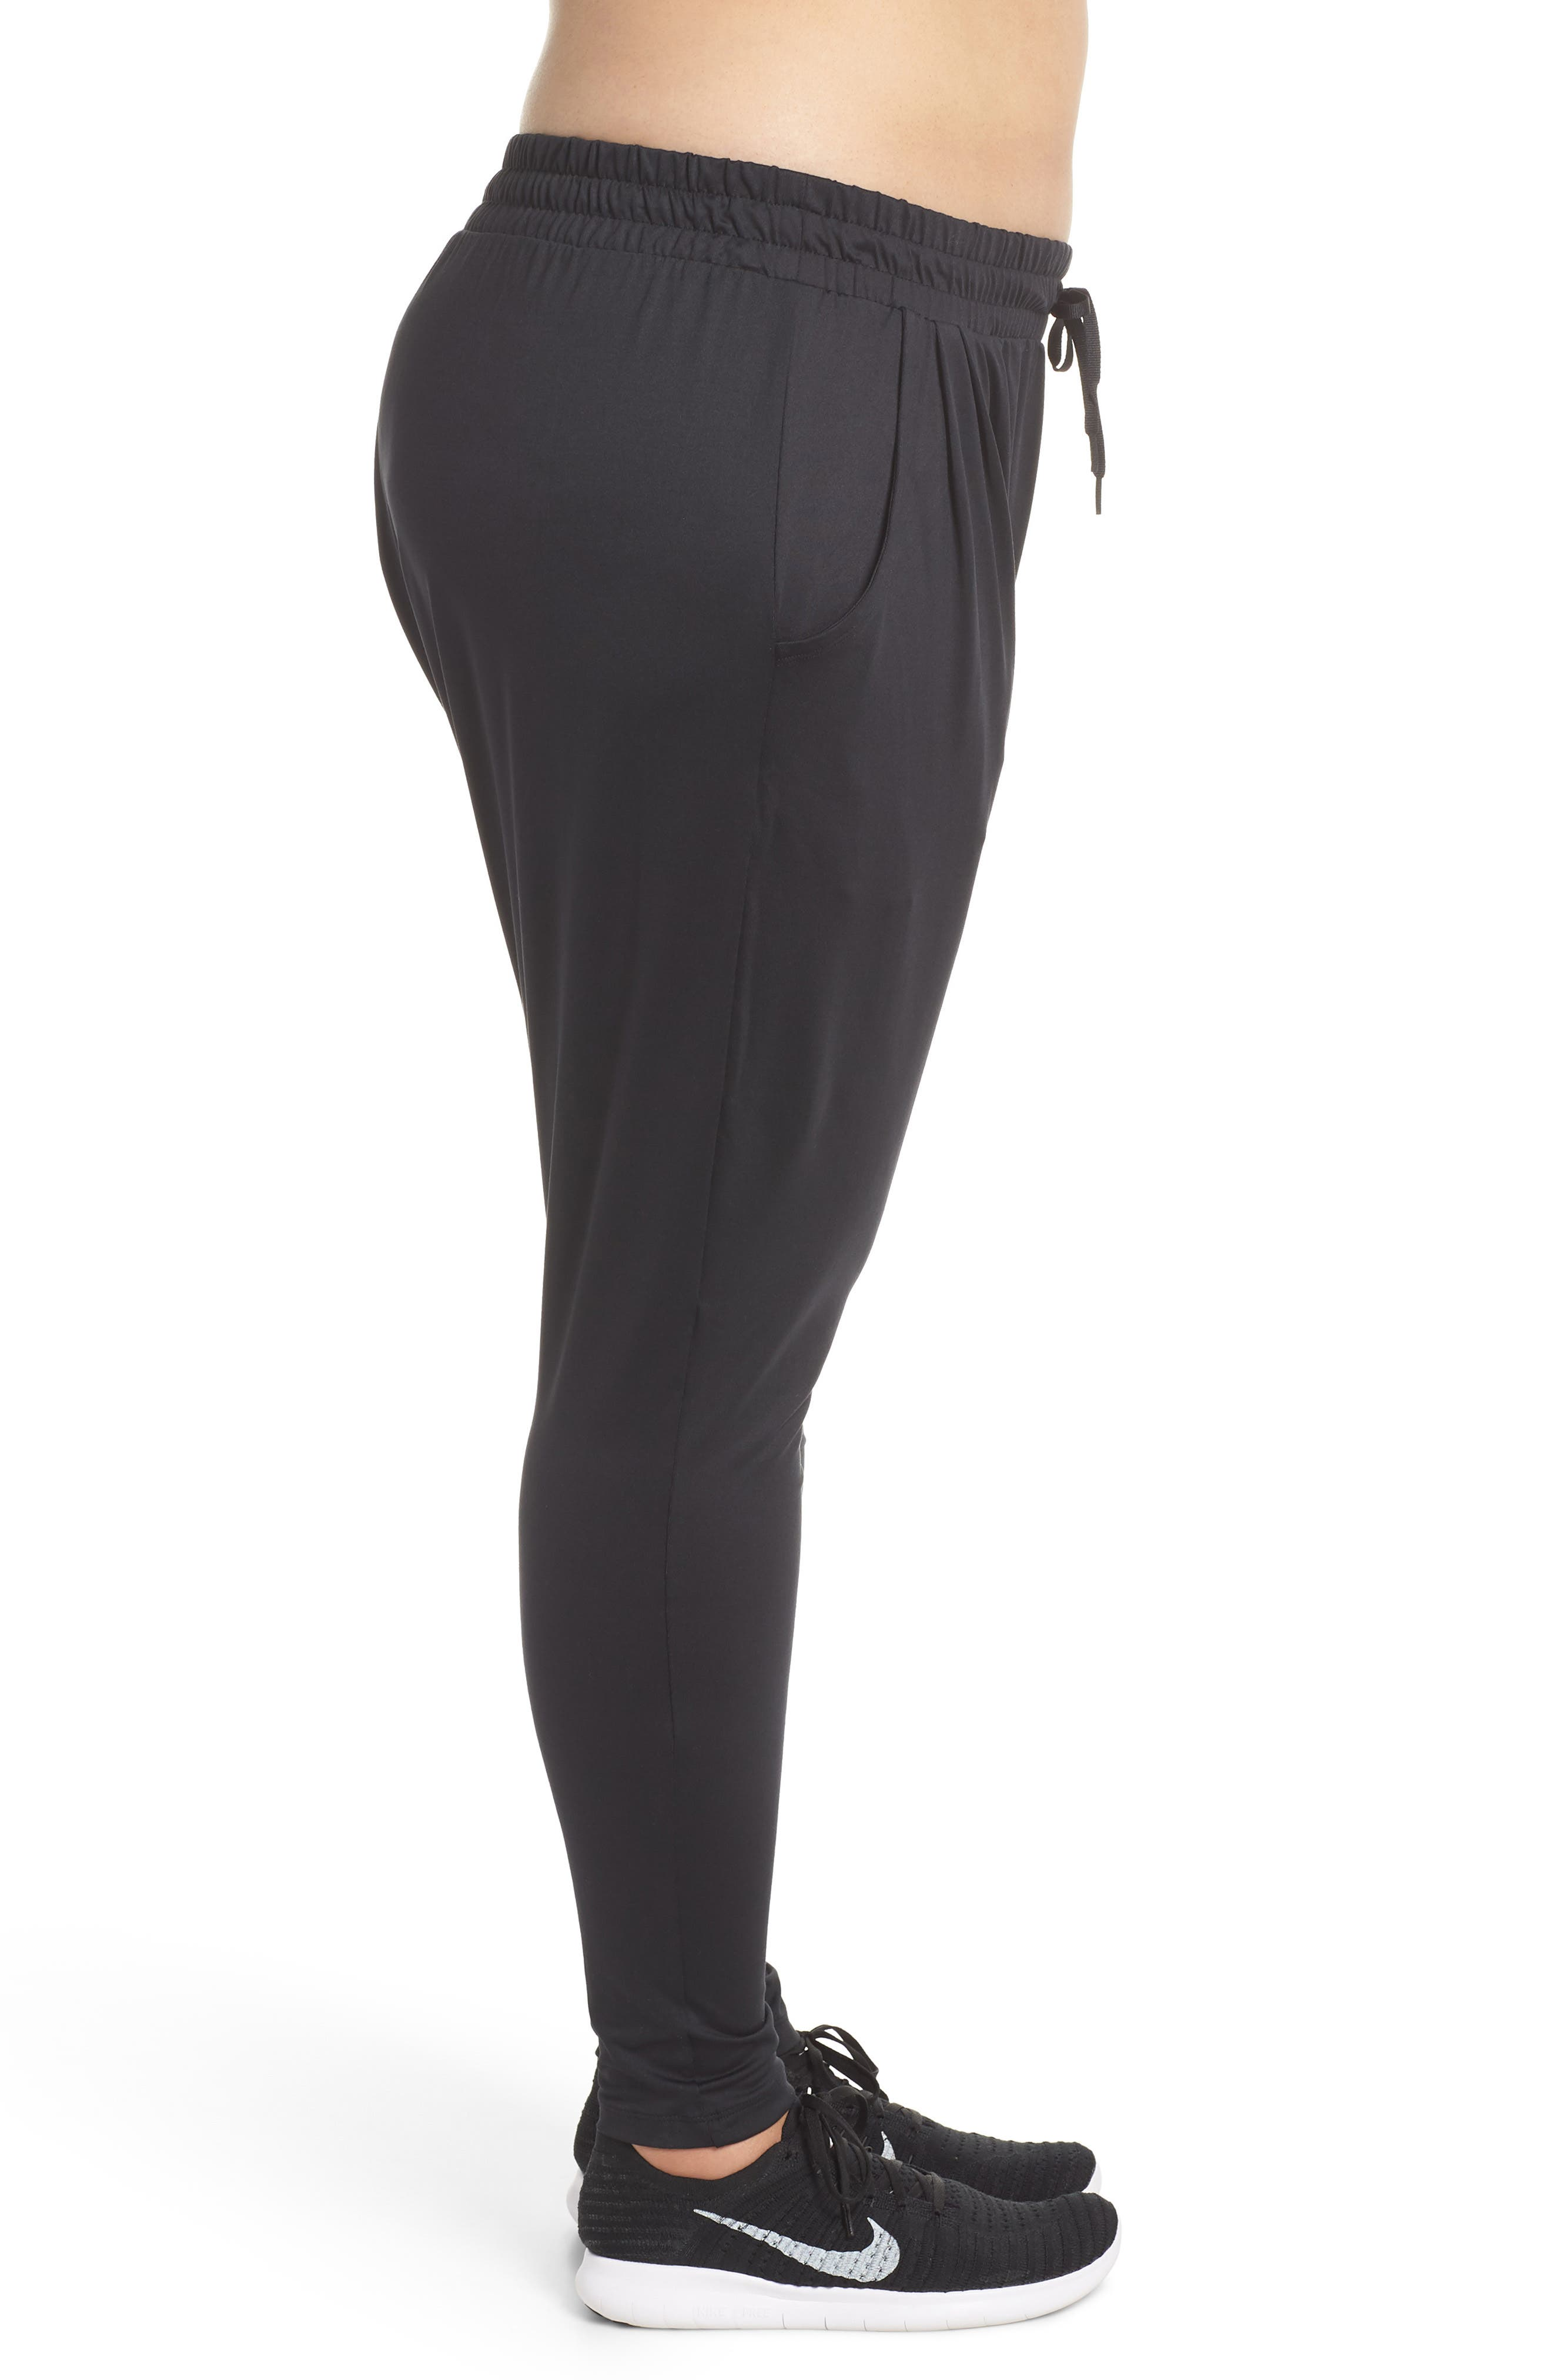 Dry Lux Flow Training Pants,                             Alternate thumbnail 3, color,                             BLACK/ CLEAR